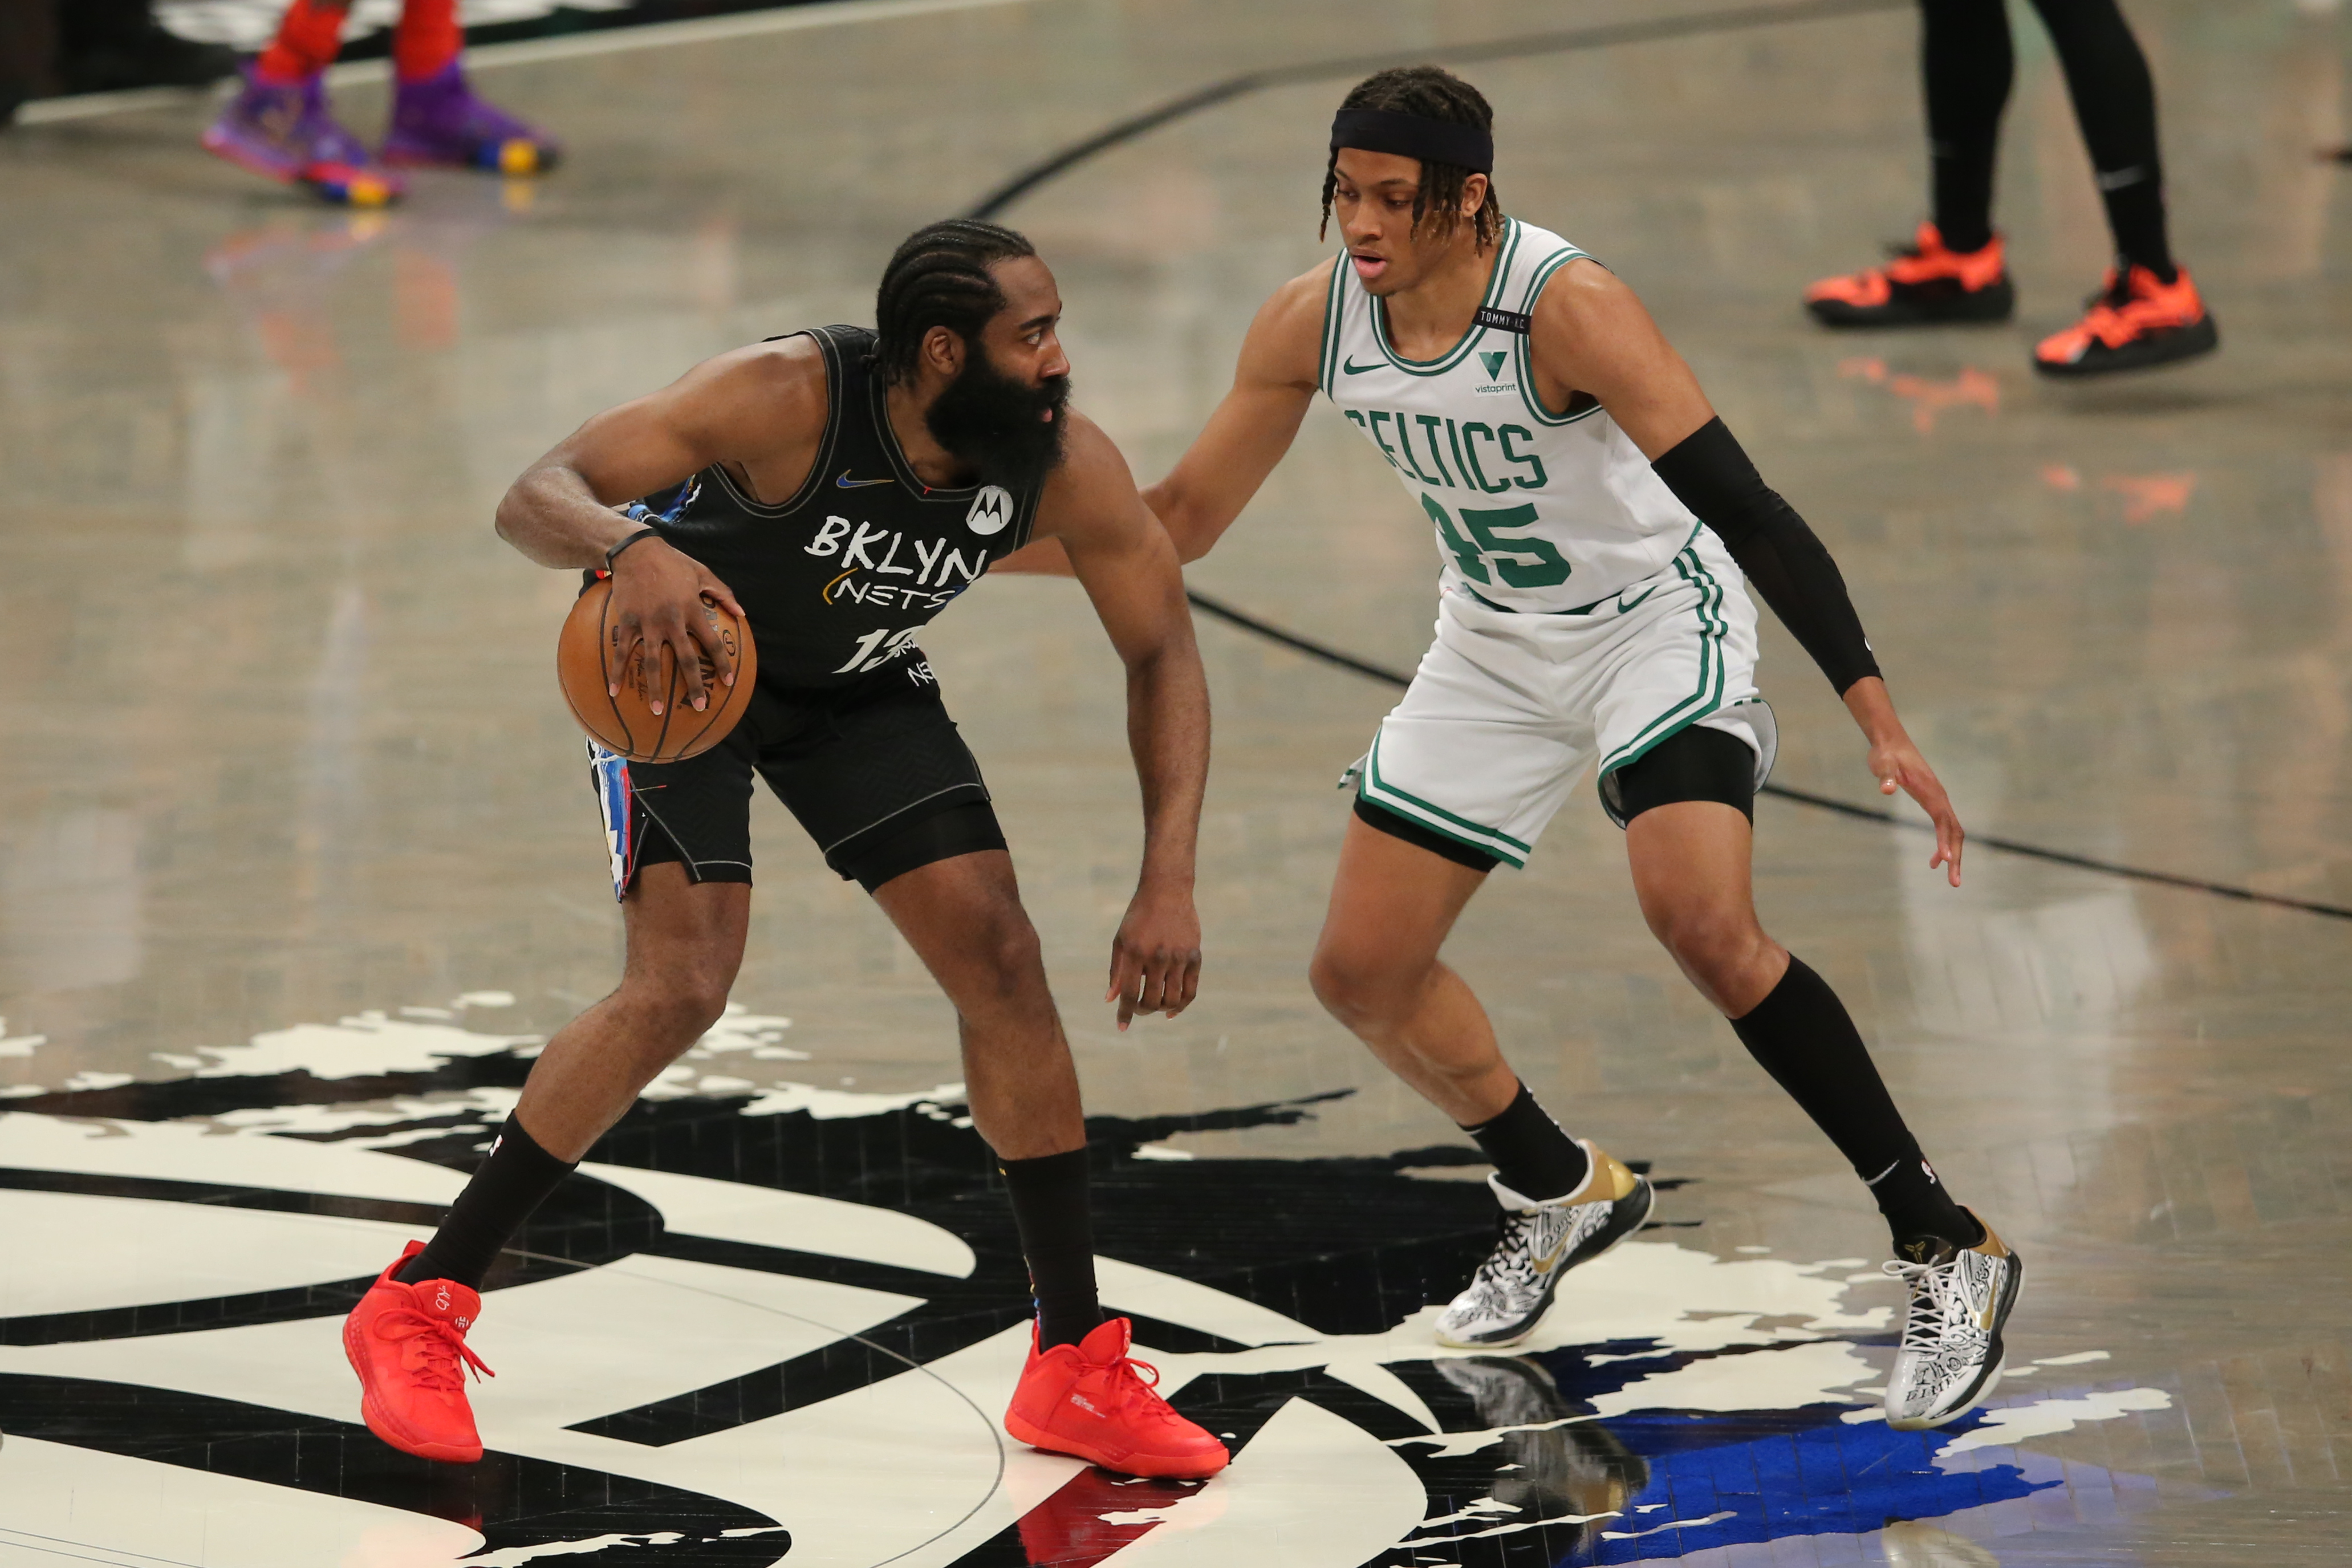 Jun 1, 2021; Brooklyn, New York, USA; Brooklyn Nets shooting guard James Harden (13) controls the ball against Boston Celtics shooting guard Romeo Langford (45) during the first quarter of game five of the first round of the 2021 NBA Playoffs at Barclays Center. Mandatory Credit: Brad Penner-USA TODAY Sports